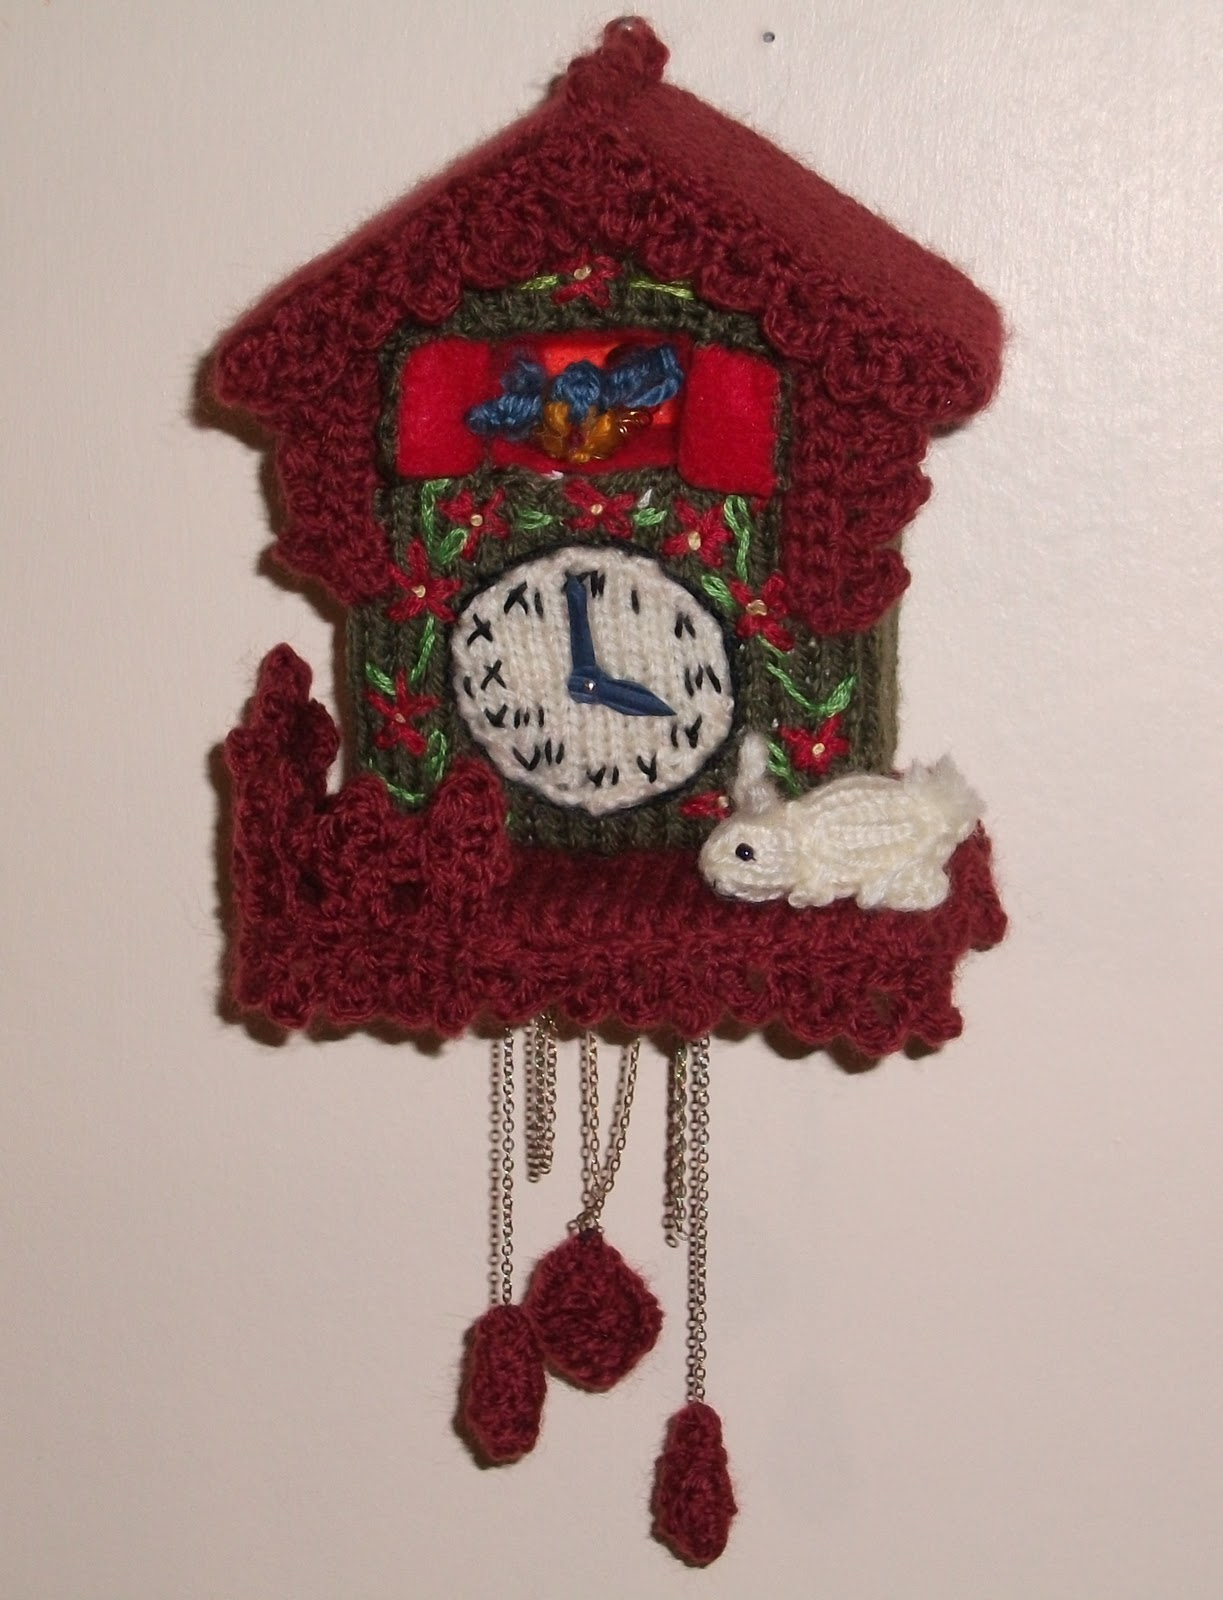 Affordable Cuckoo Clocks 1000 43 Images About Cuckoo Clocks On Pinterest Cuckoo